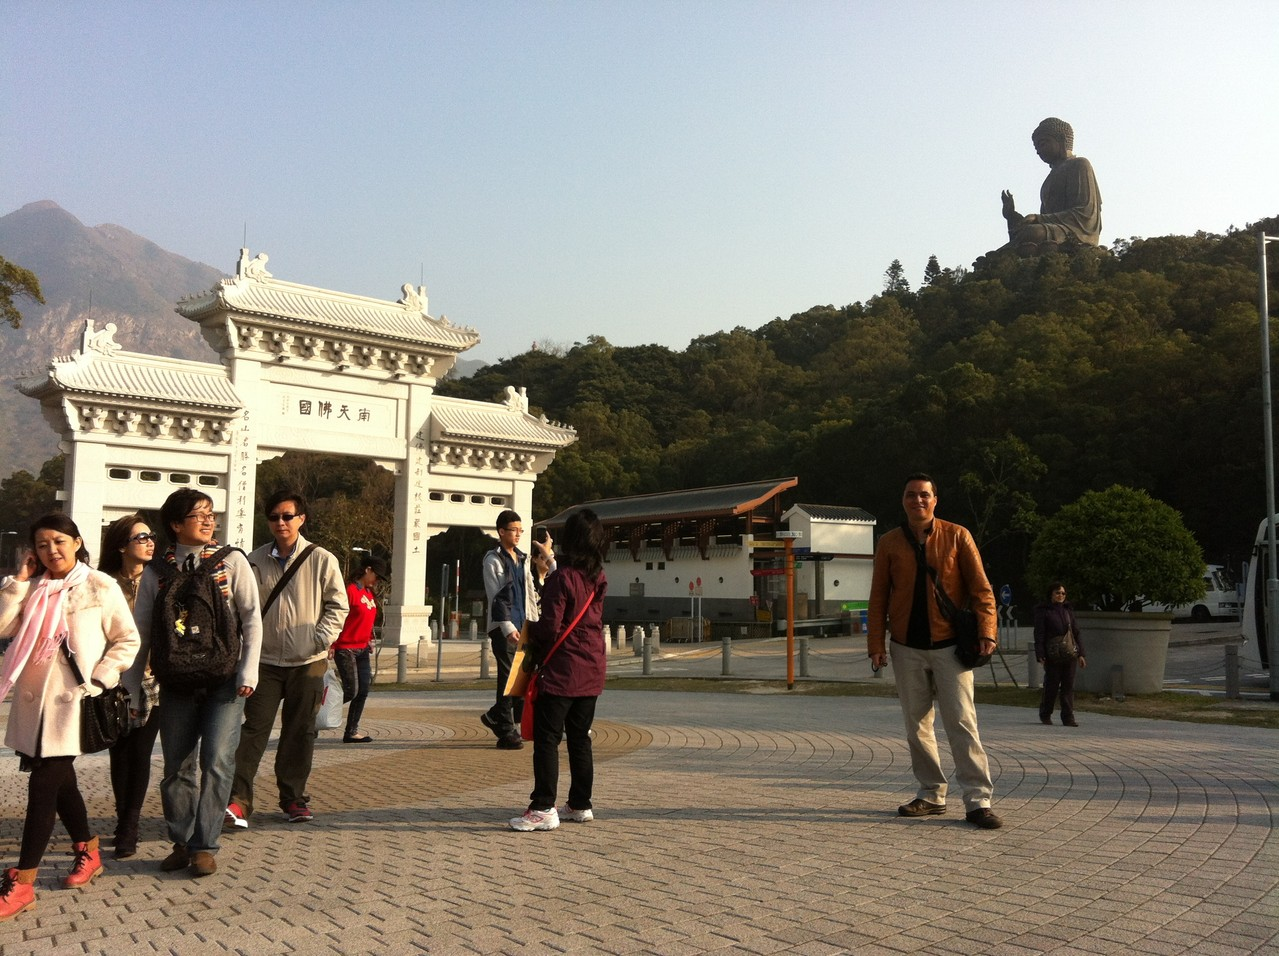 We come closer ... — at Ngong Ping 360.